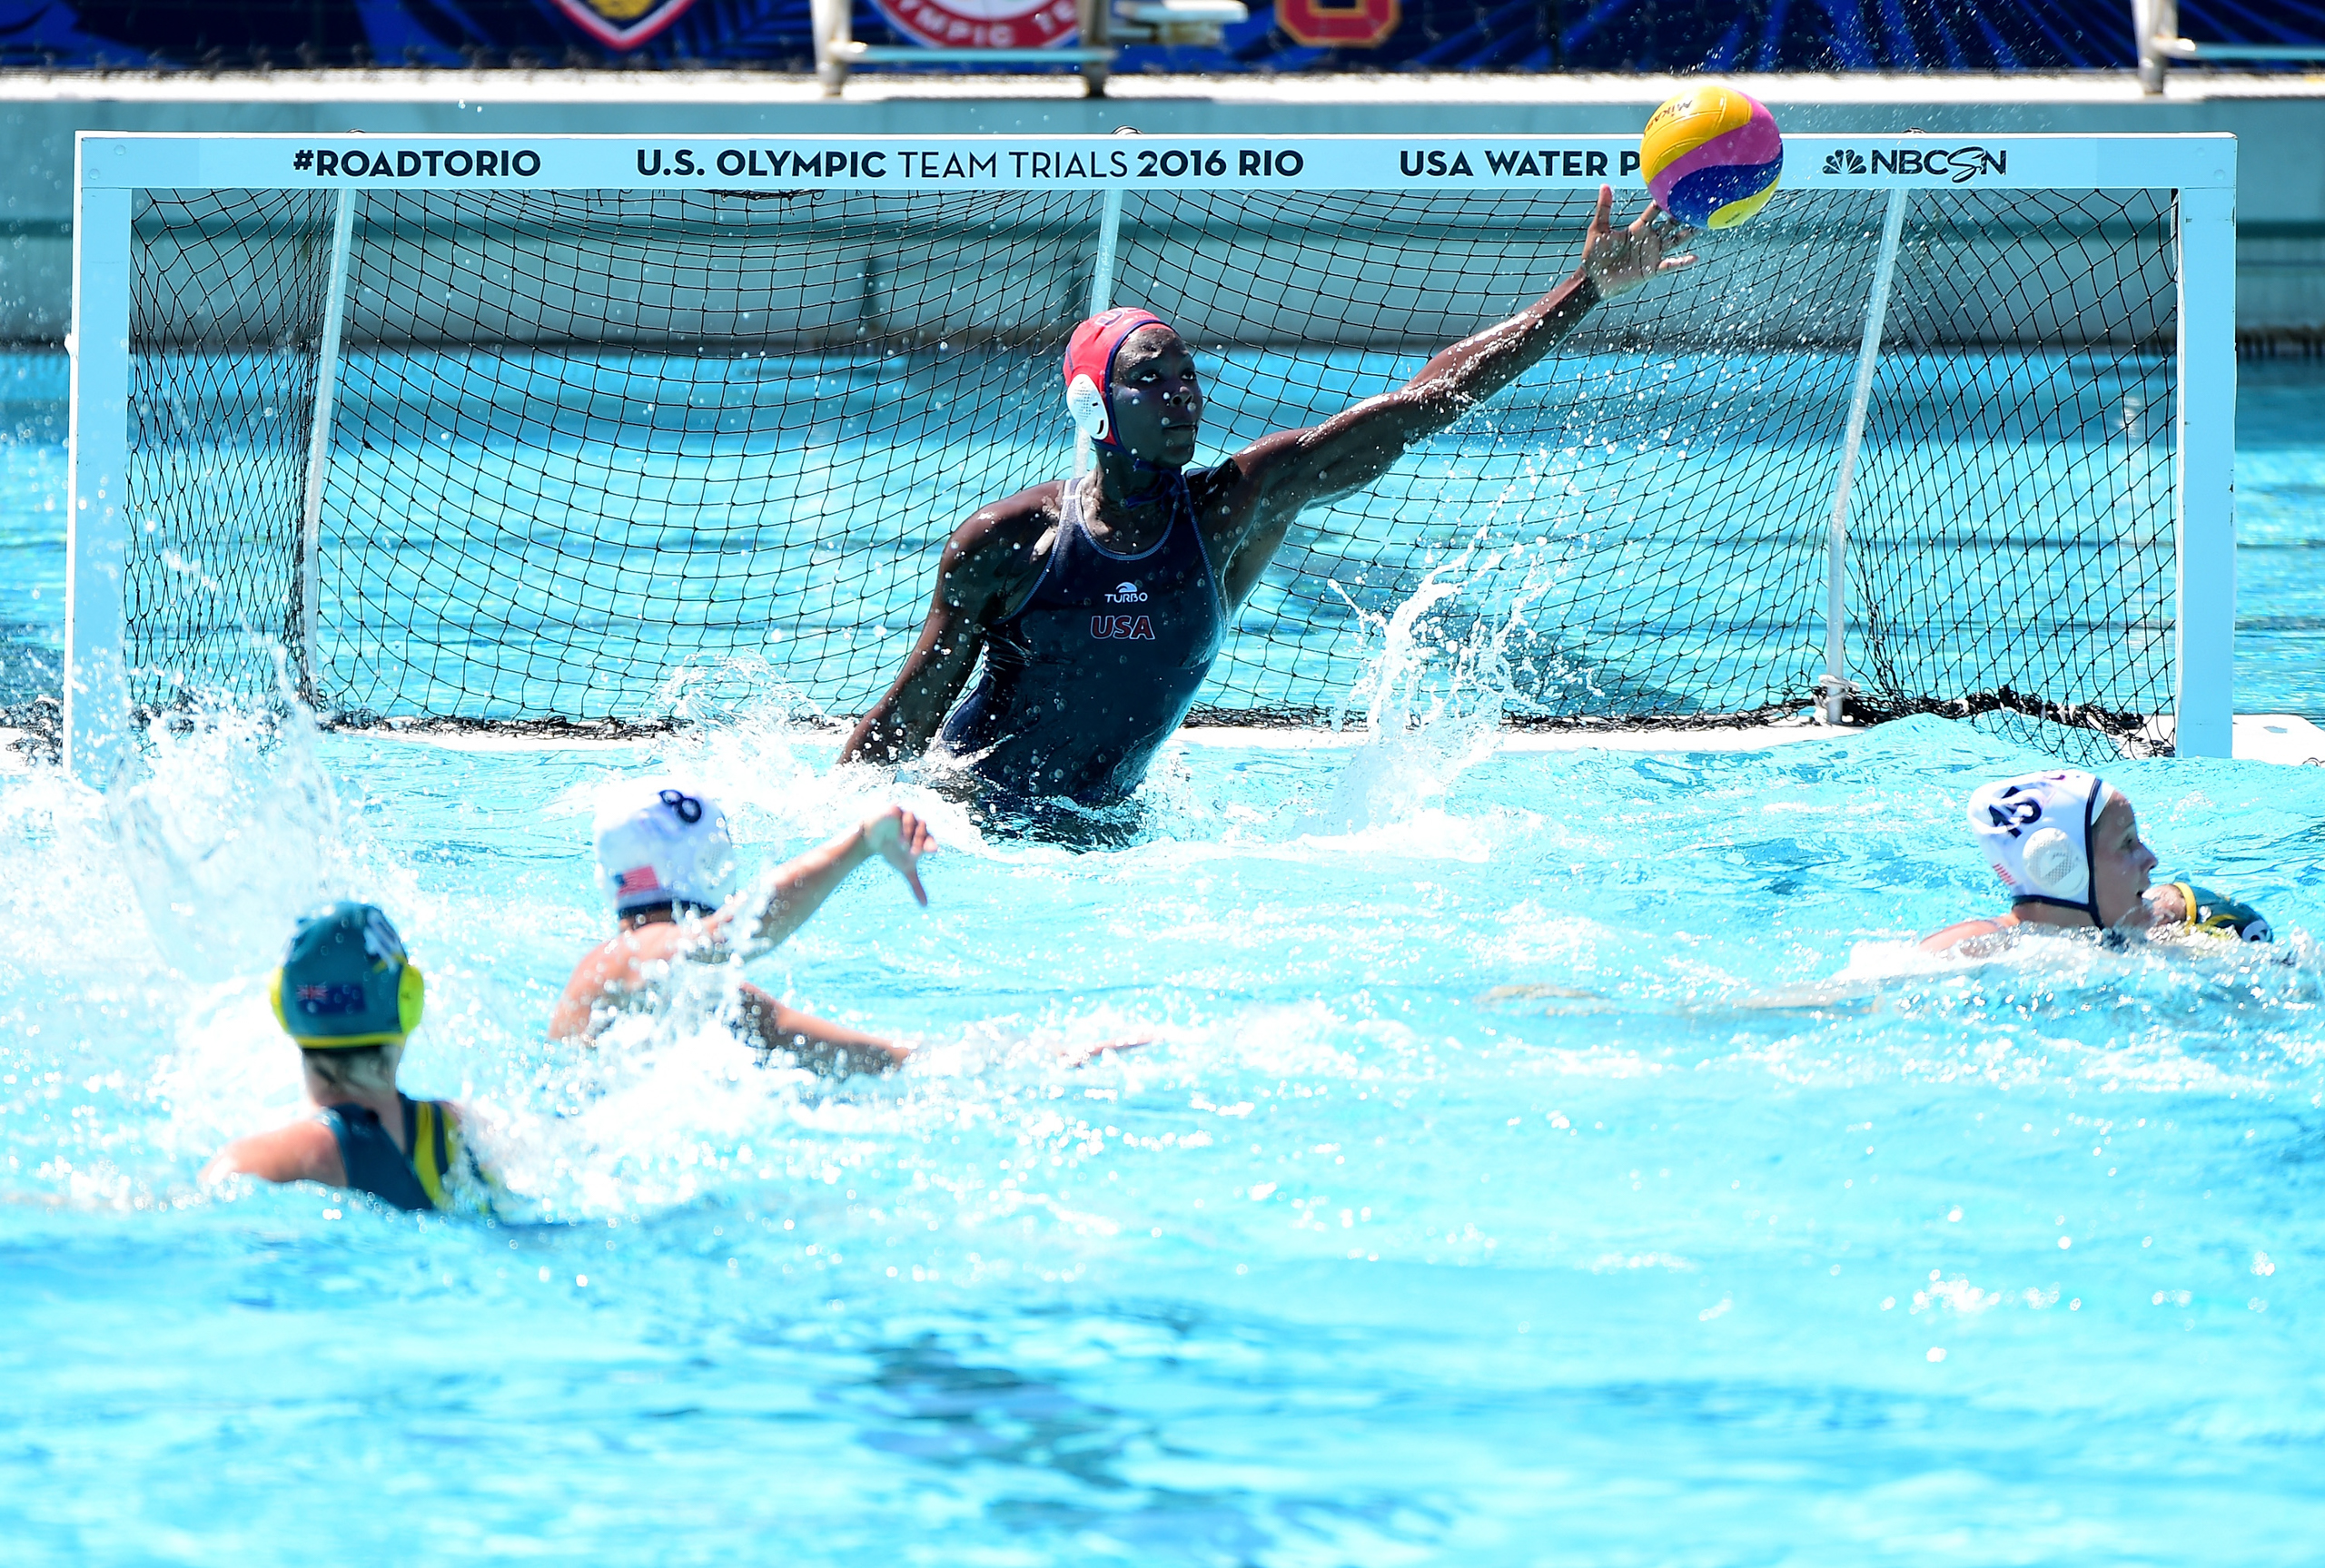 <strong>Ashleigh Johnson, Water Polo, USA</strong>Johnson, a rangy goalkeeper who learned the game at a Miami-area community pool, will be the first black American woman to compete in Olympic water polo. The favored U.S. team owns every major title in the sport.